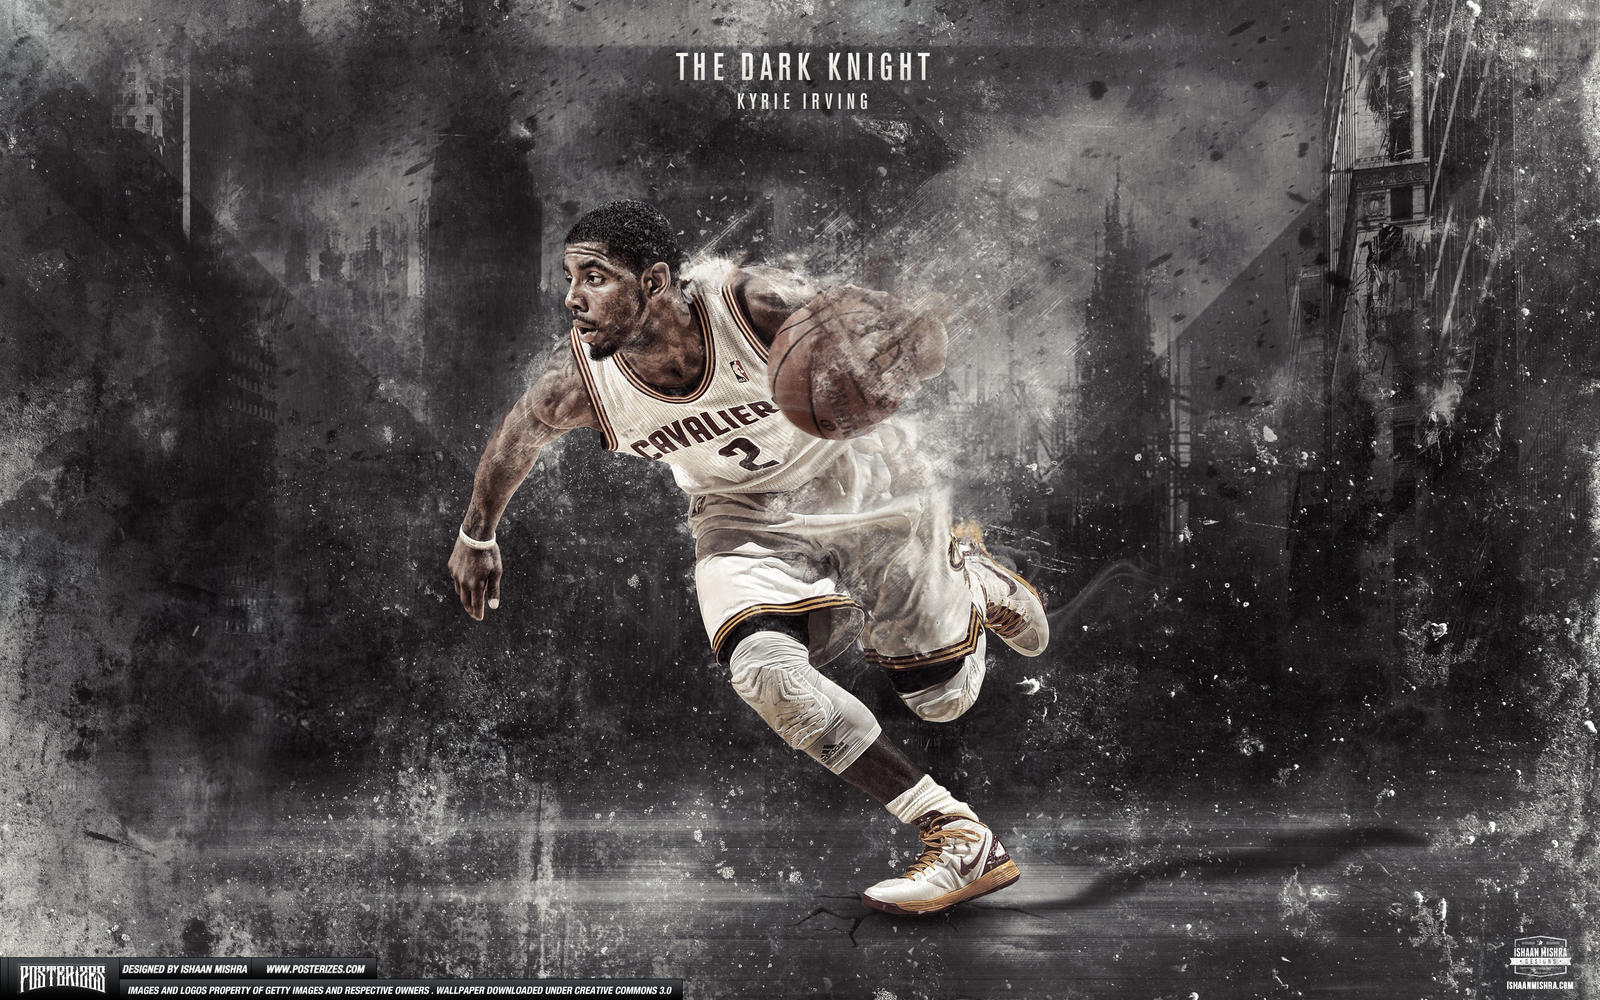 kyrie irving dark knight wallpaper by ishaanmishra on